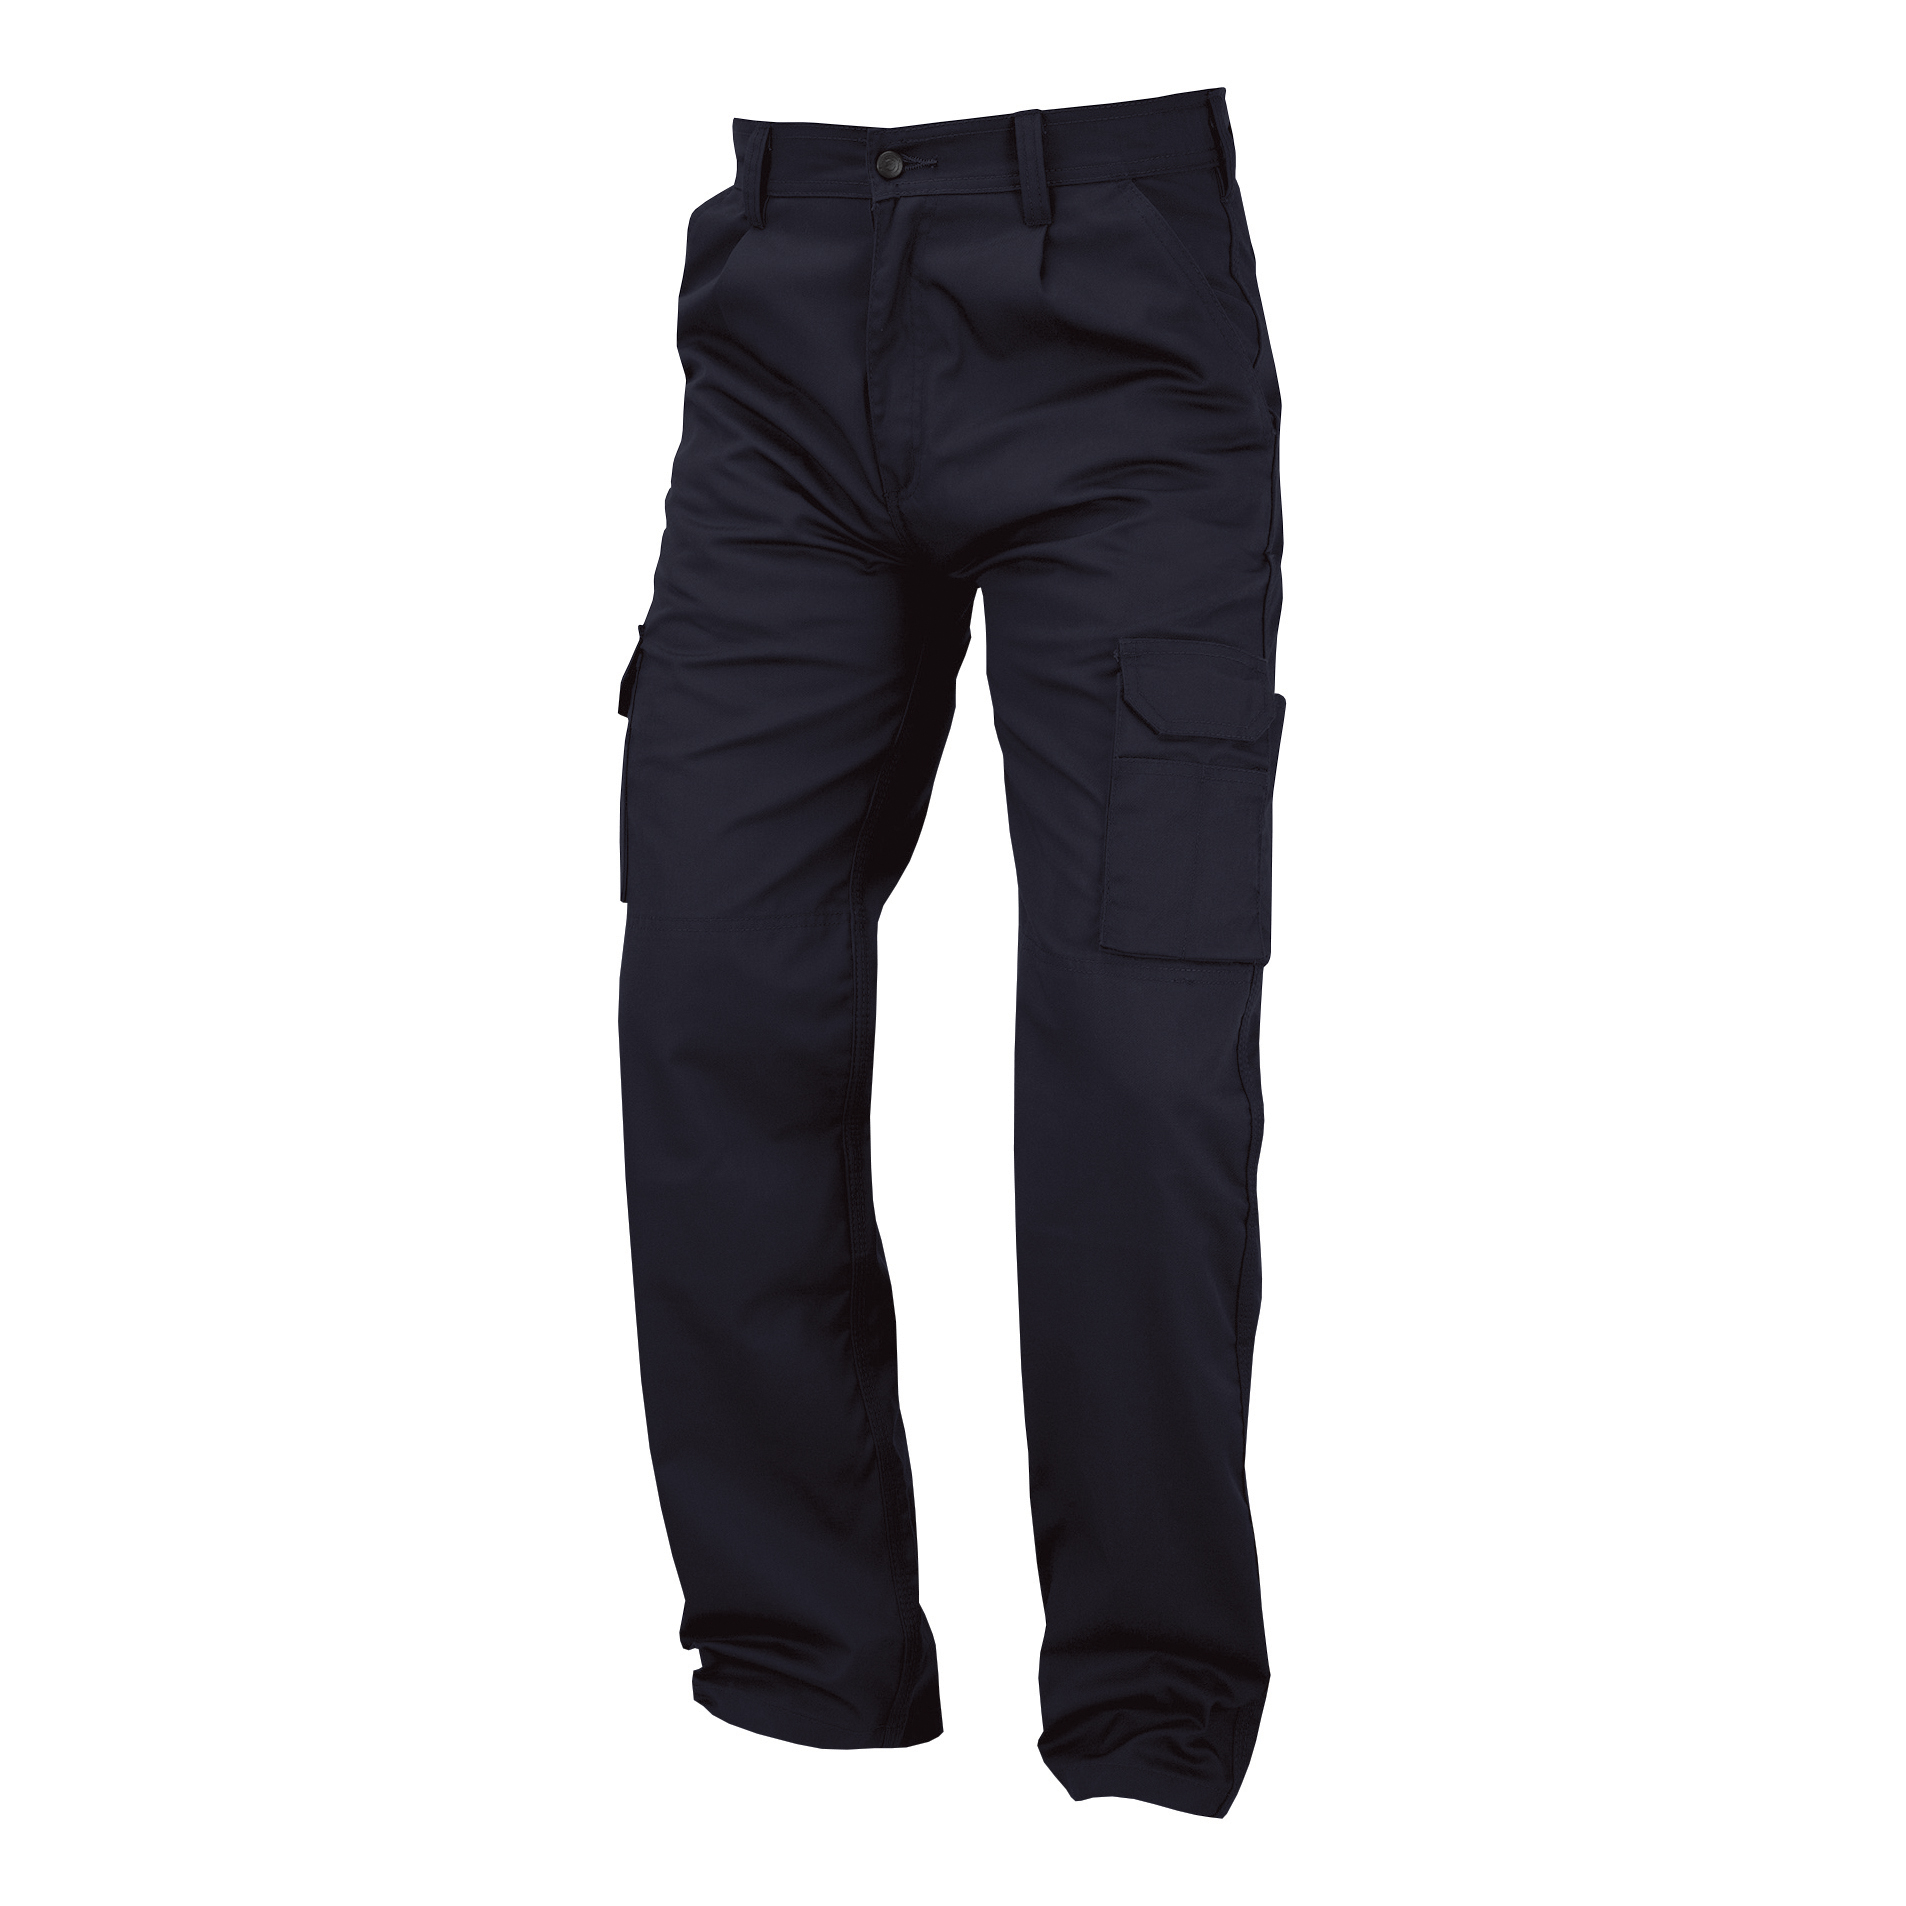 Business Kneepad Combat Trouser Multi-functional Waist 50in Leg 29in Navy